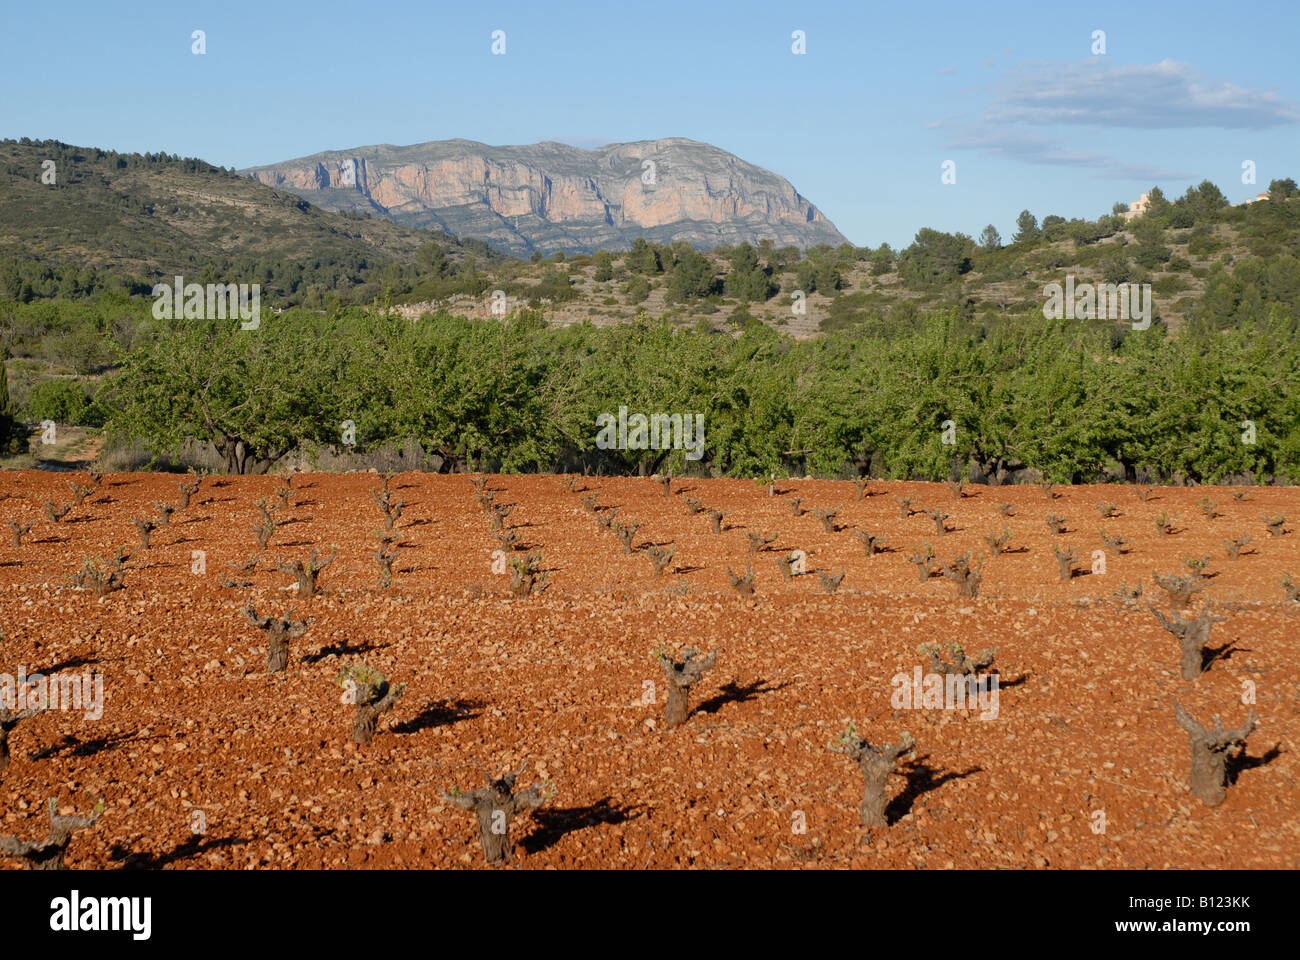 view to Montgo mountain & vineyard in early spring, Jalon Valley, Alicante Province, Comunidad Valenciana, Spain - Stock Image